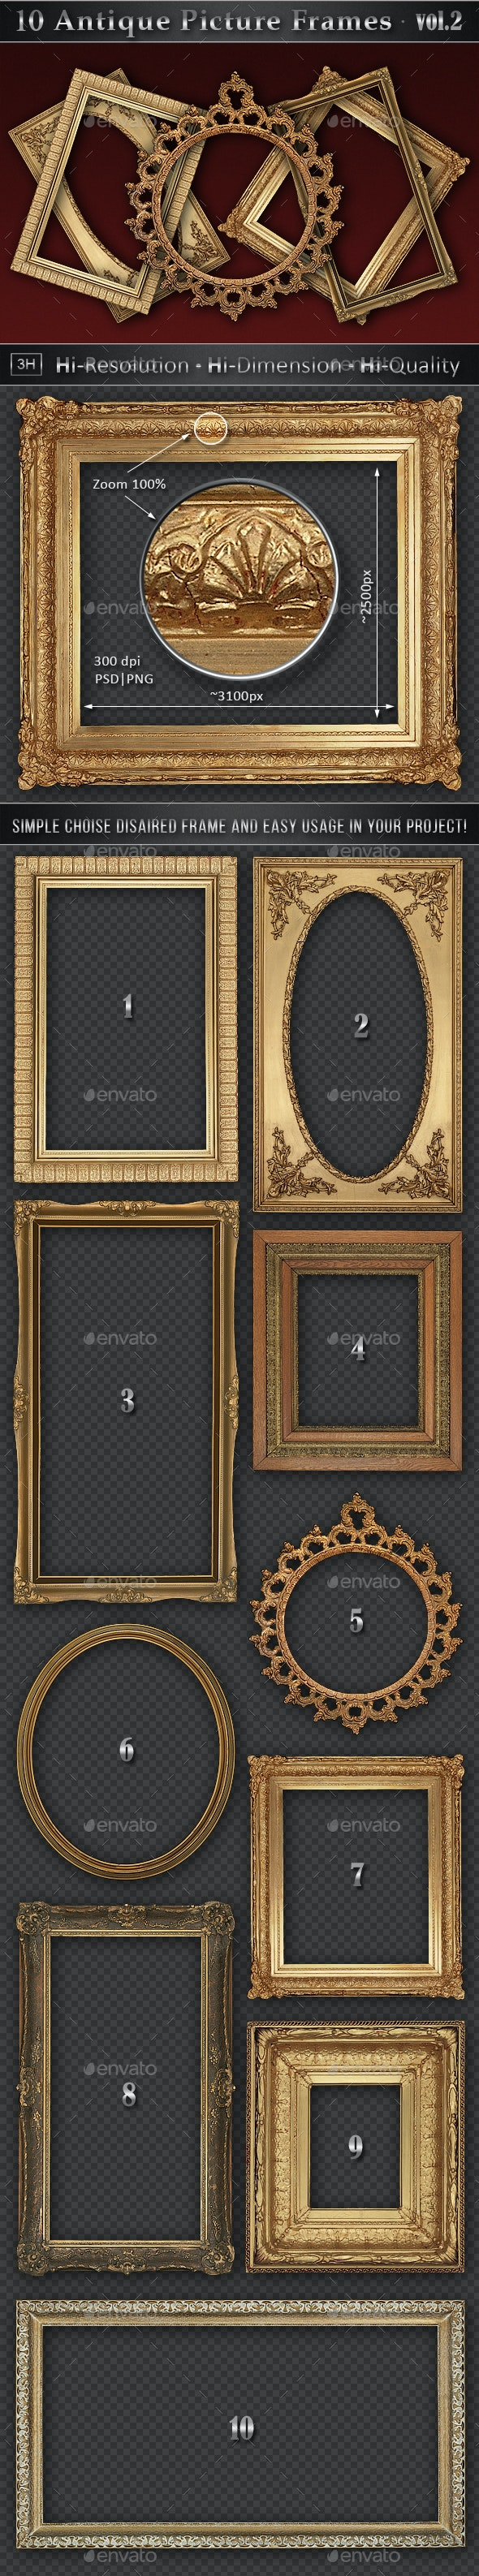 10 Antique Classic Picture Frames vol.2 - Home & Office Isolated Objects